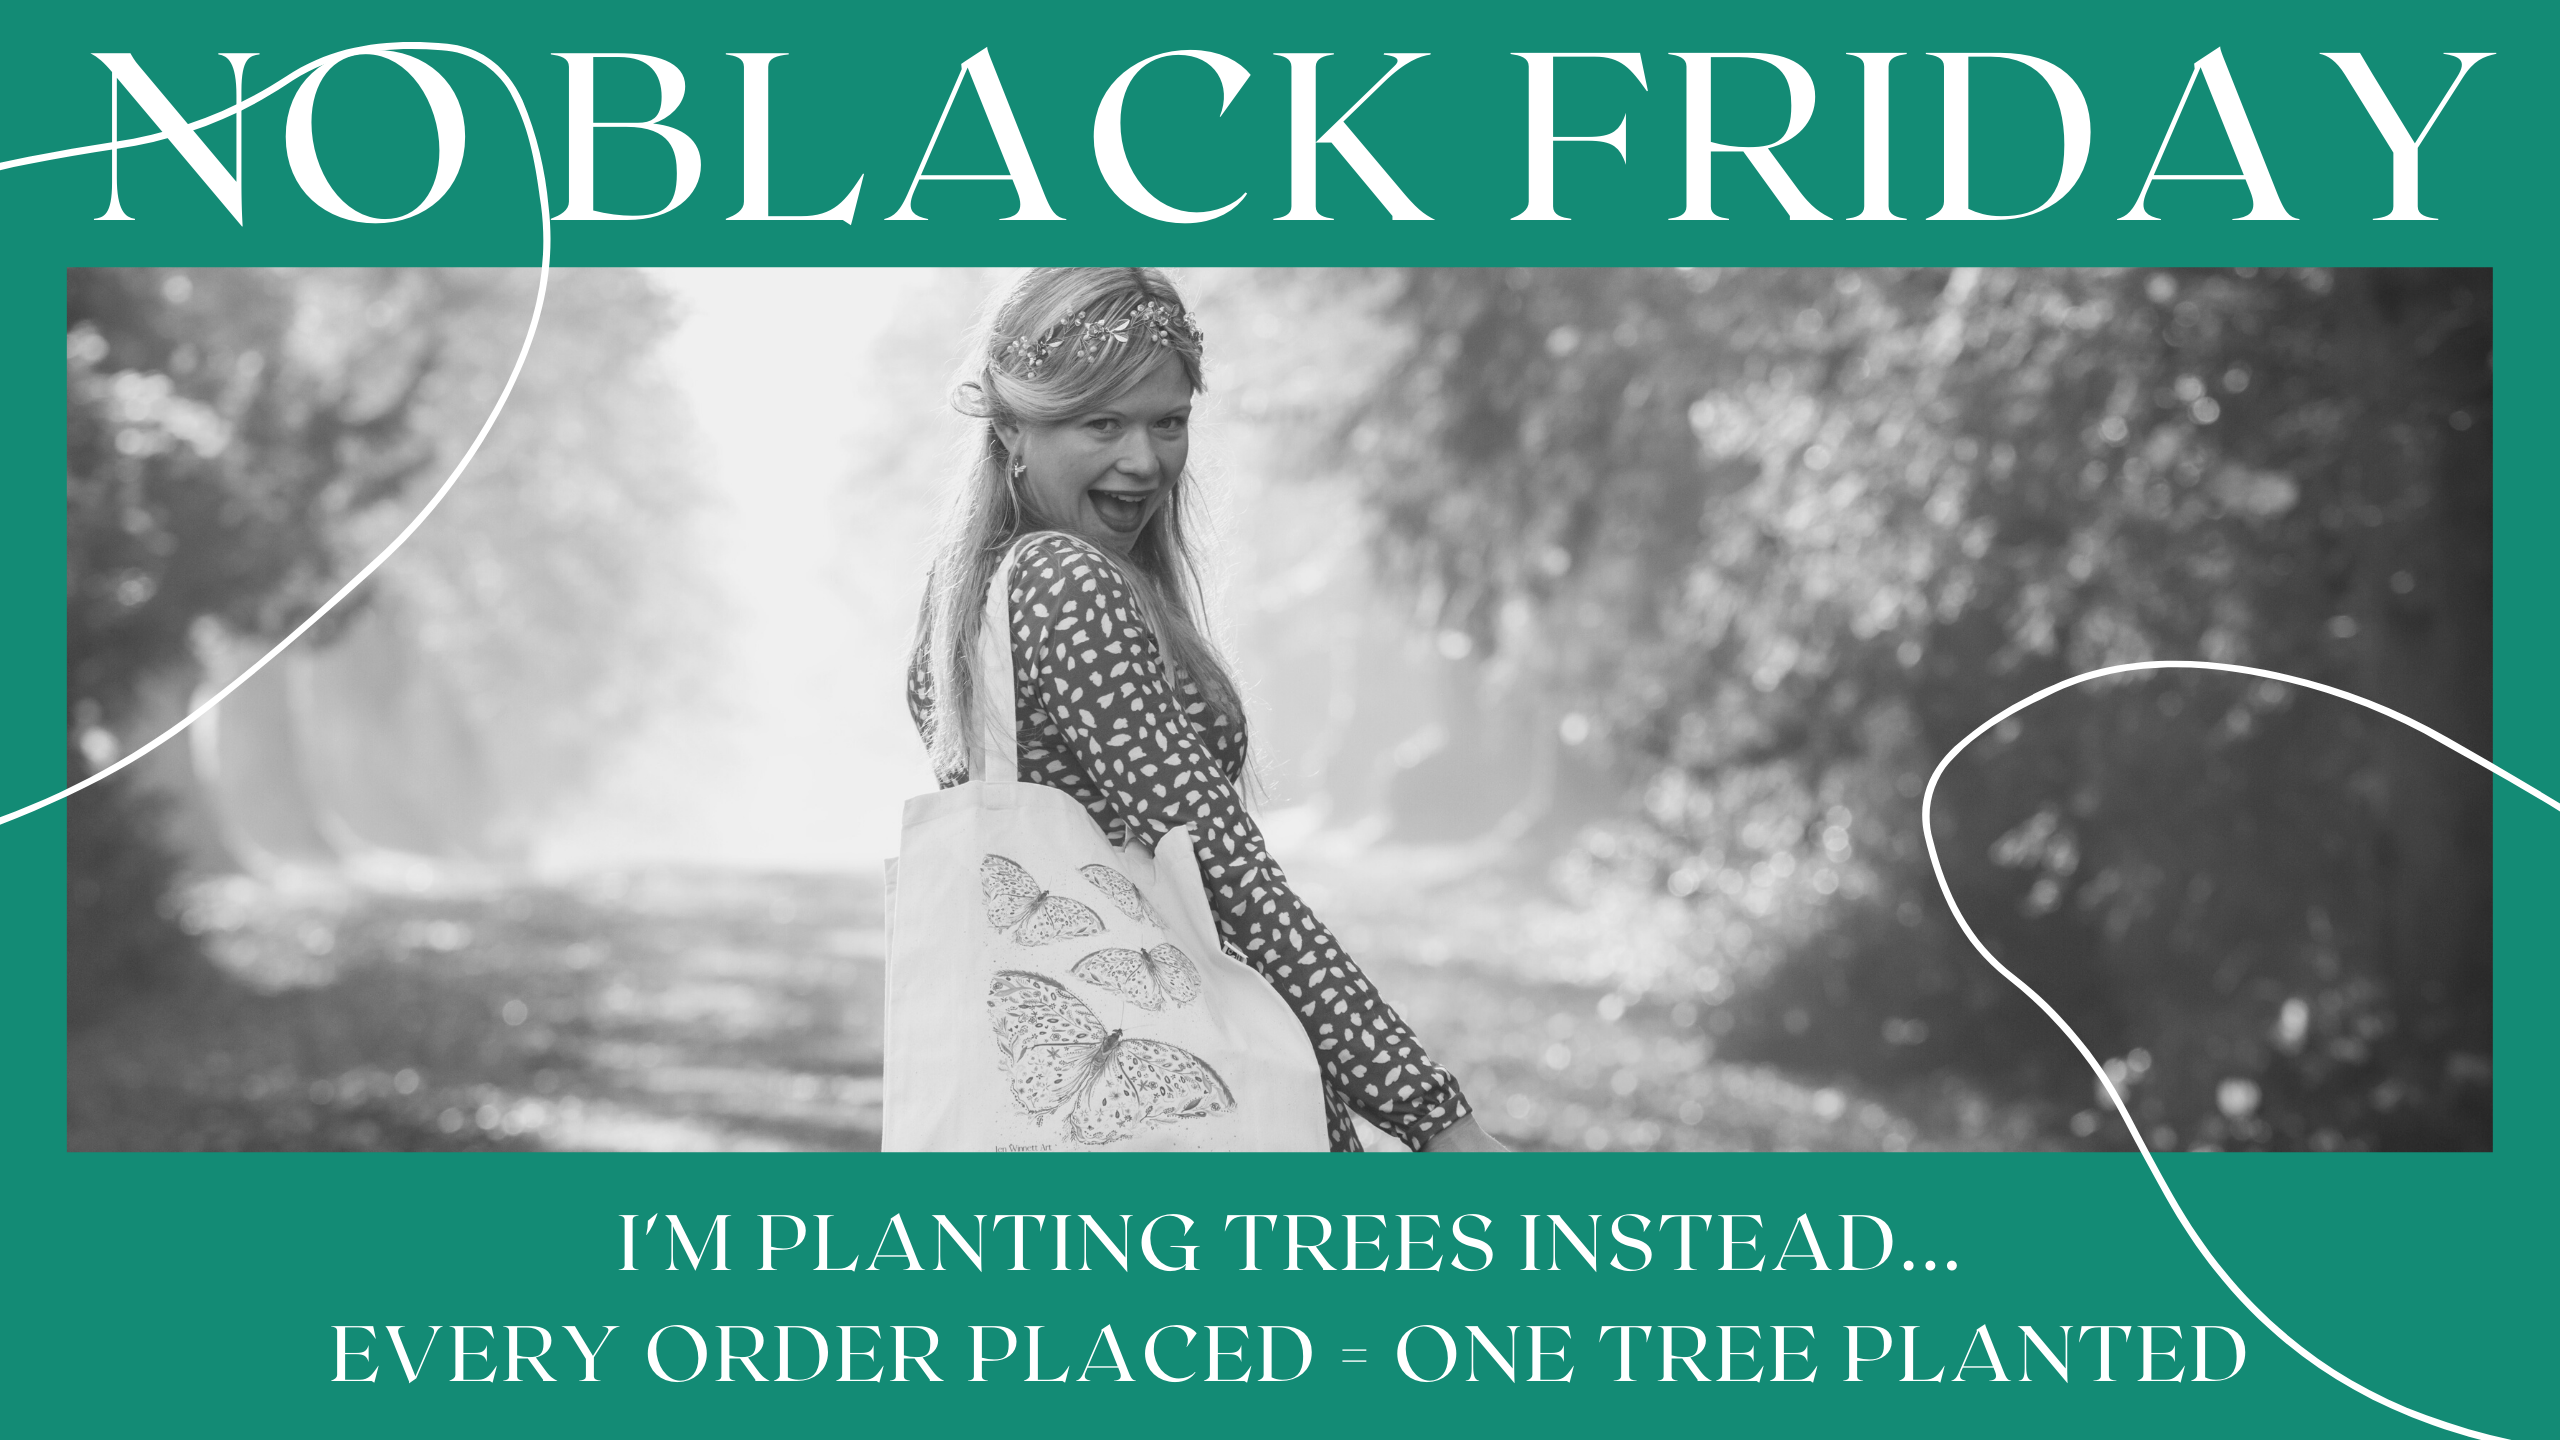 No Black Friday! This year I''ll be planting trees instead. Every order placed between now and Christmas = one tree planted